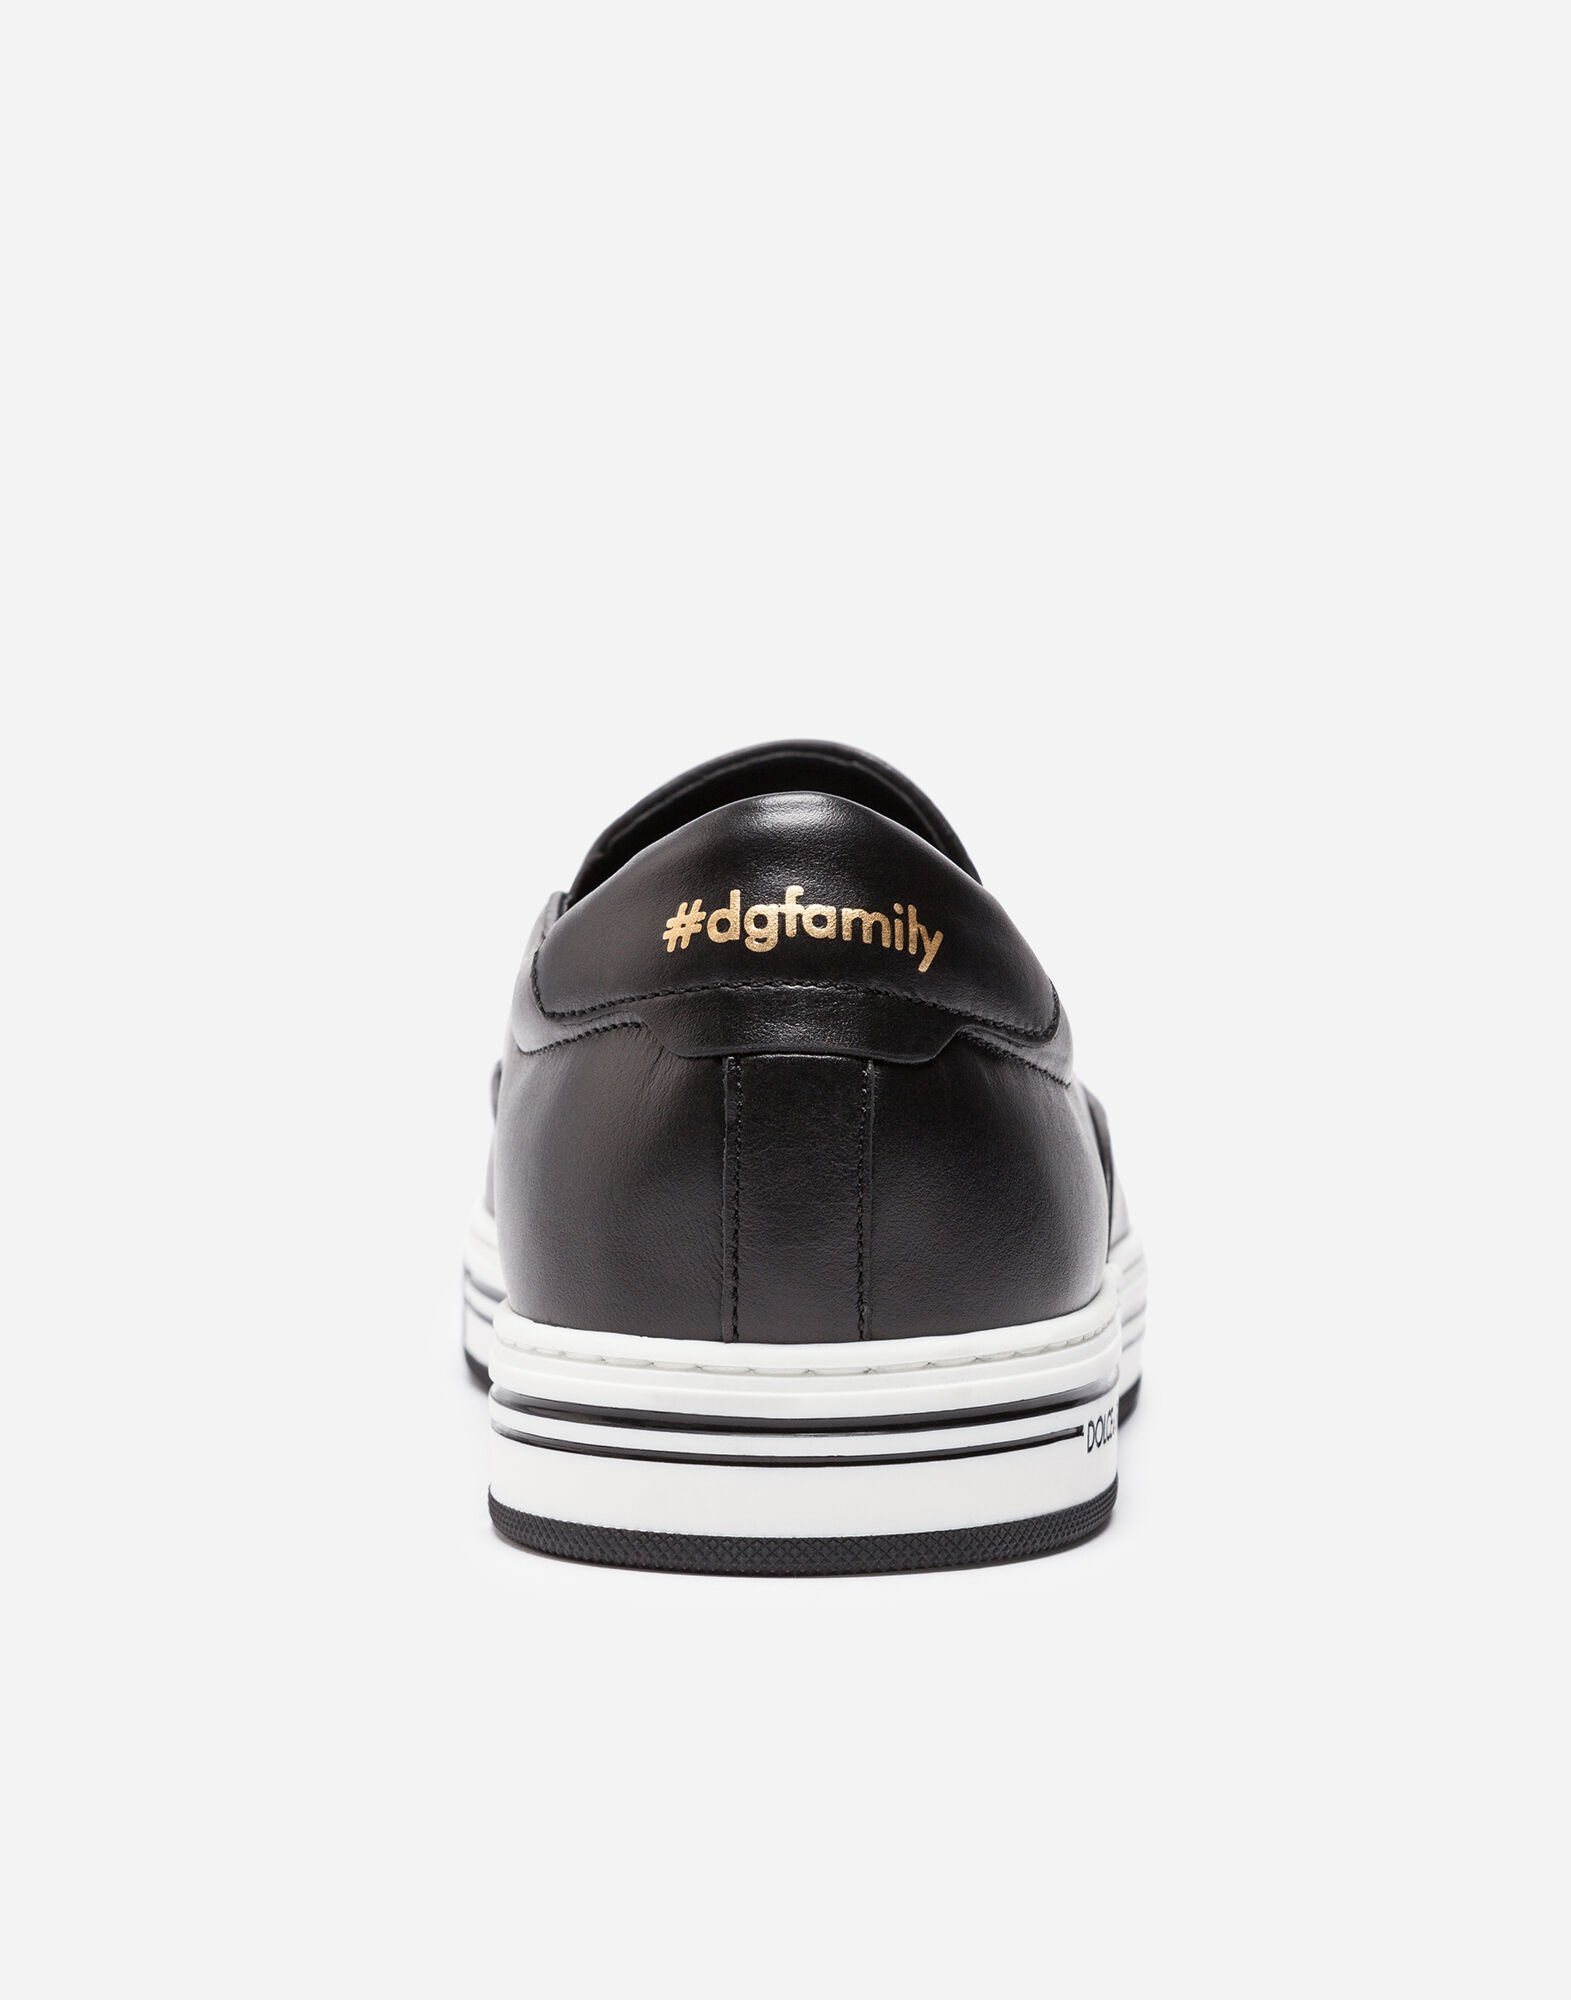 SLIP-ON SNEAKERS WITH PATCHES OF THE DESIGNERS